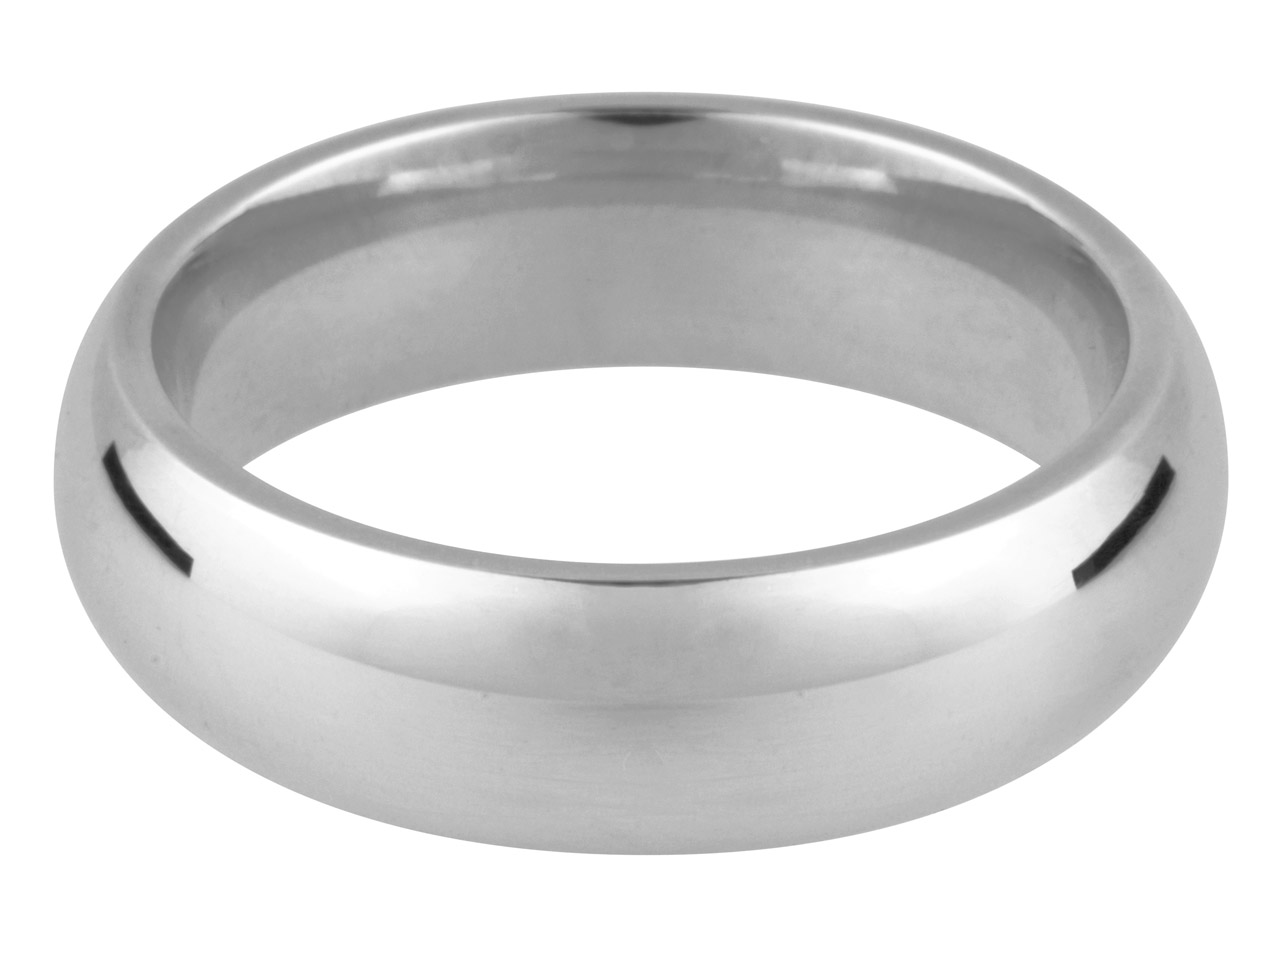 Palladium Court Wedding Ring 5.0mm U 8.1gms Heavy Weight Hallmarked   Wall Thickness 2.36mm